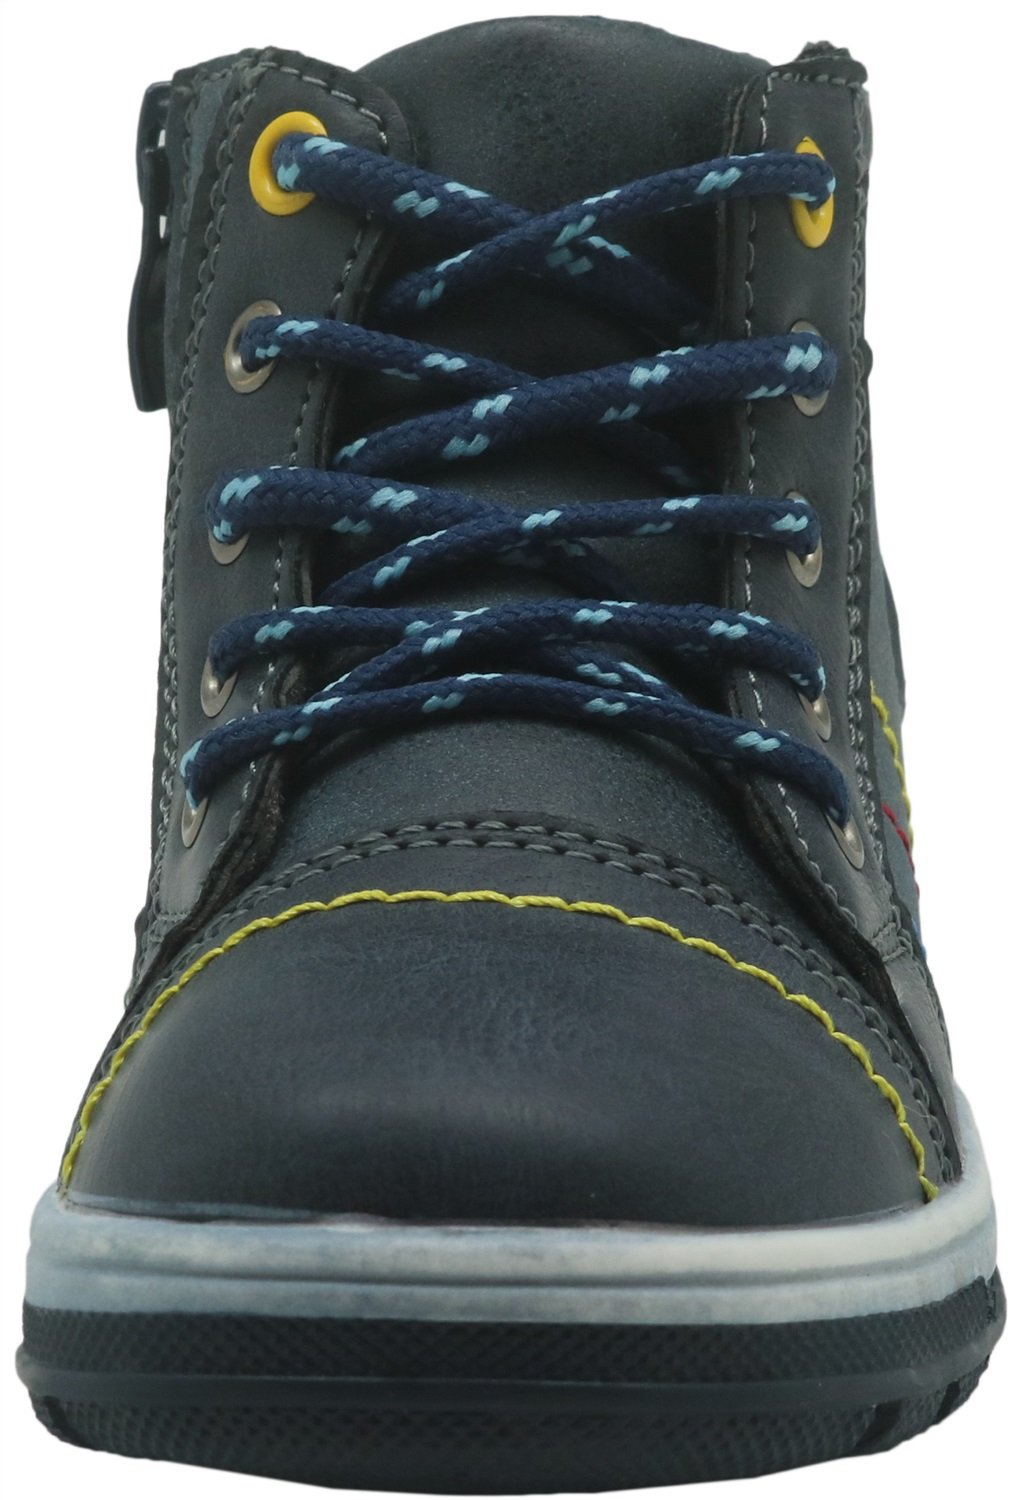 Color : Navy , Size : 8.5 M US Toddler Non-Slip Boys Lace up Shoes Side Zipper Ankle Boots Toddler Durable